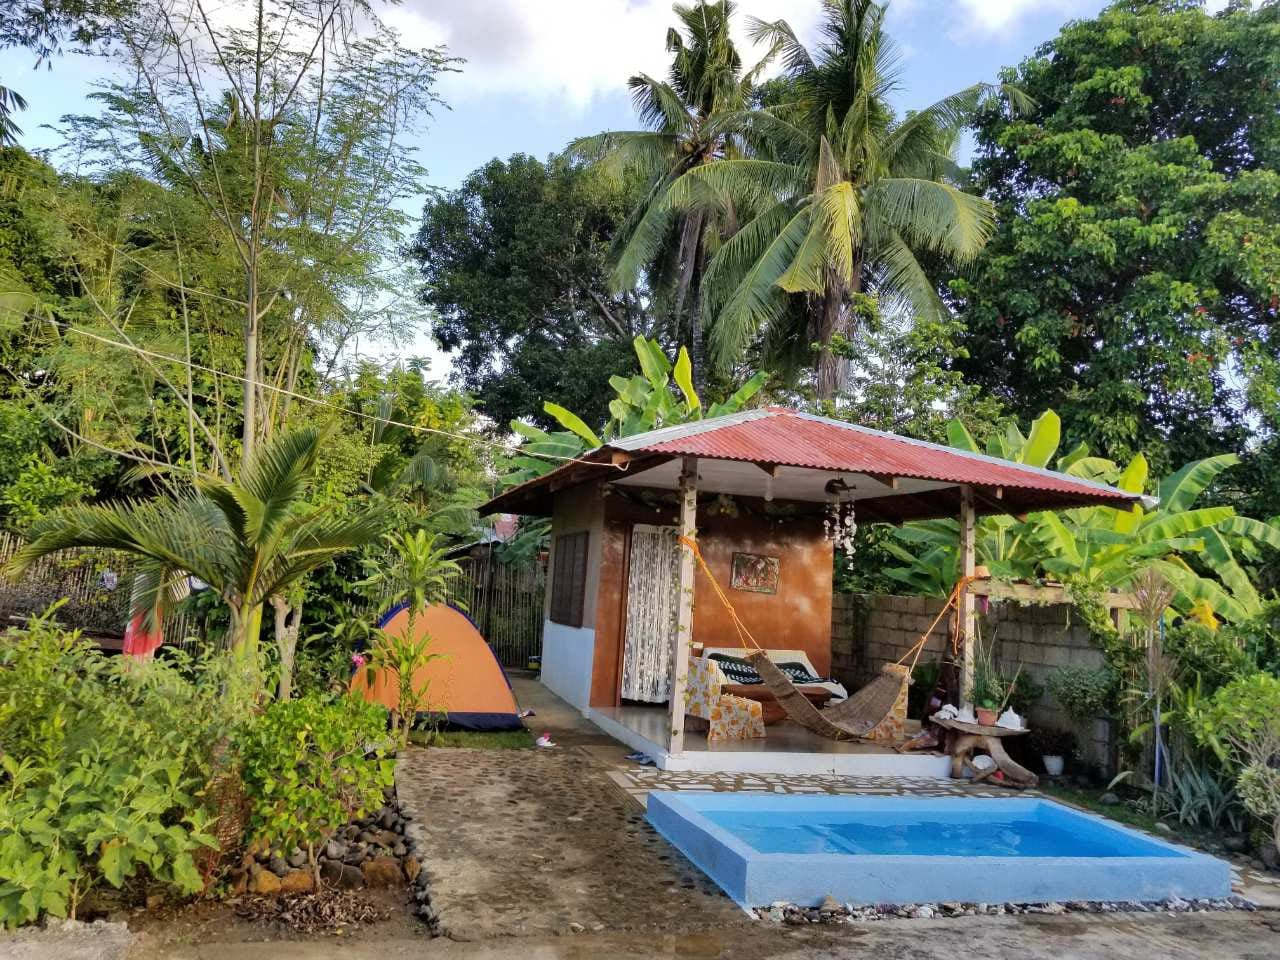 Sitting pool and cottage